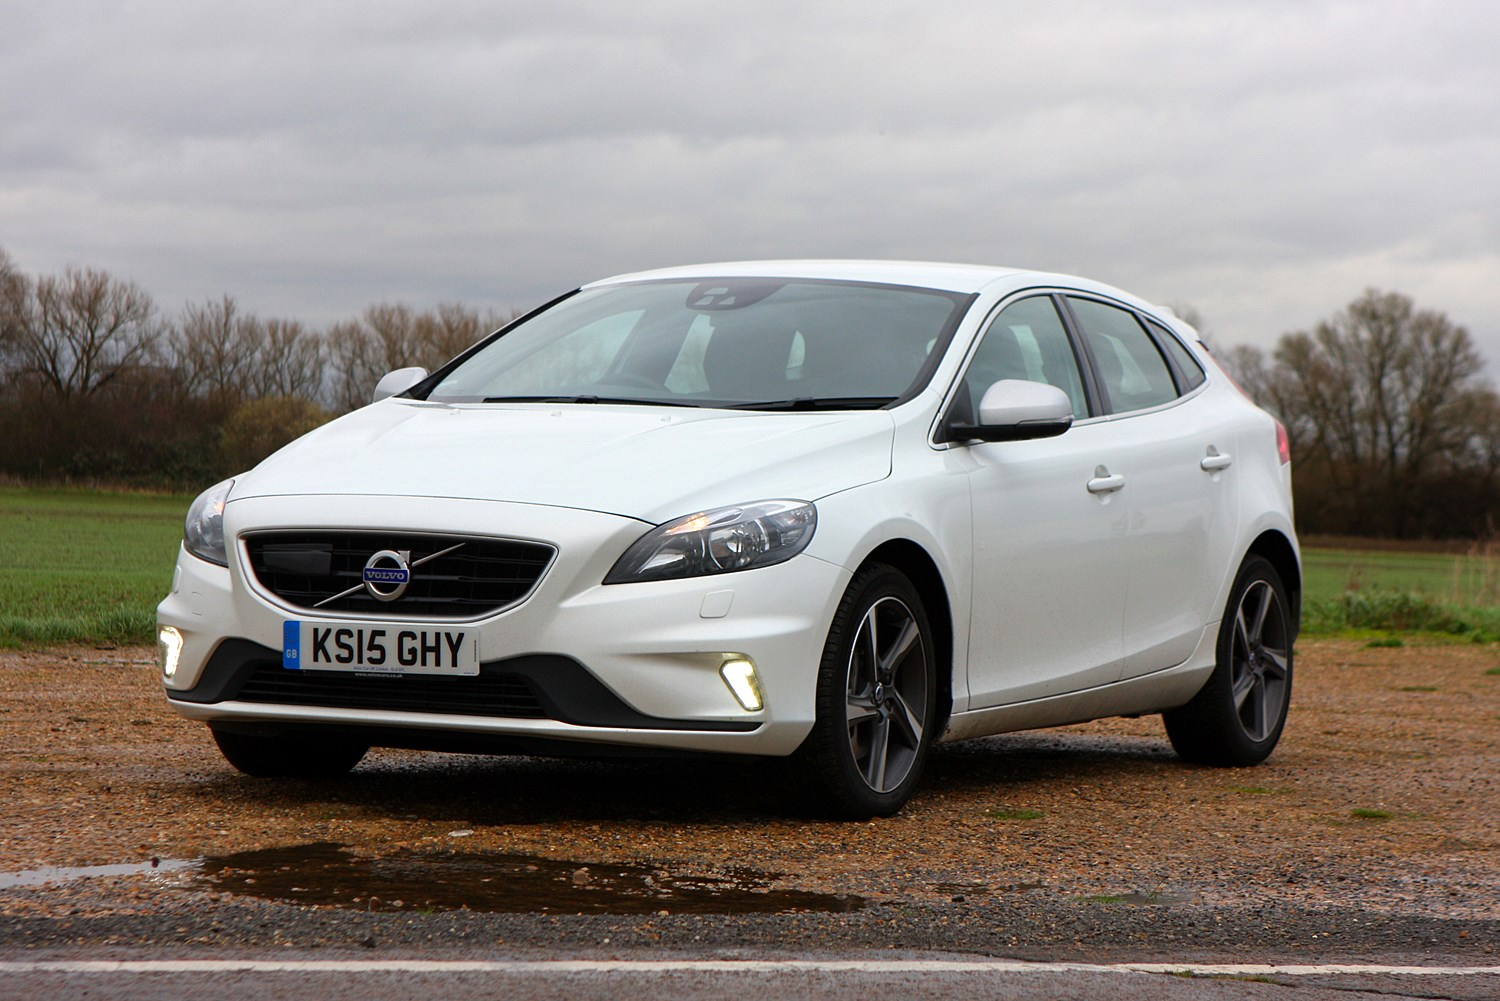 Volvo V40 Hatchback (2012 - ) Photos | Parkers